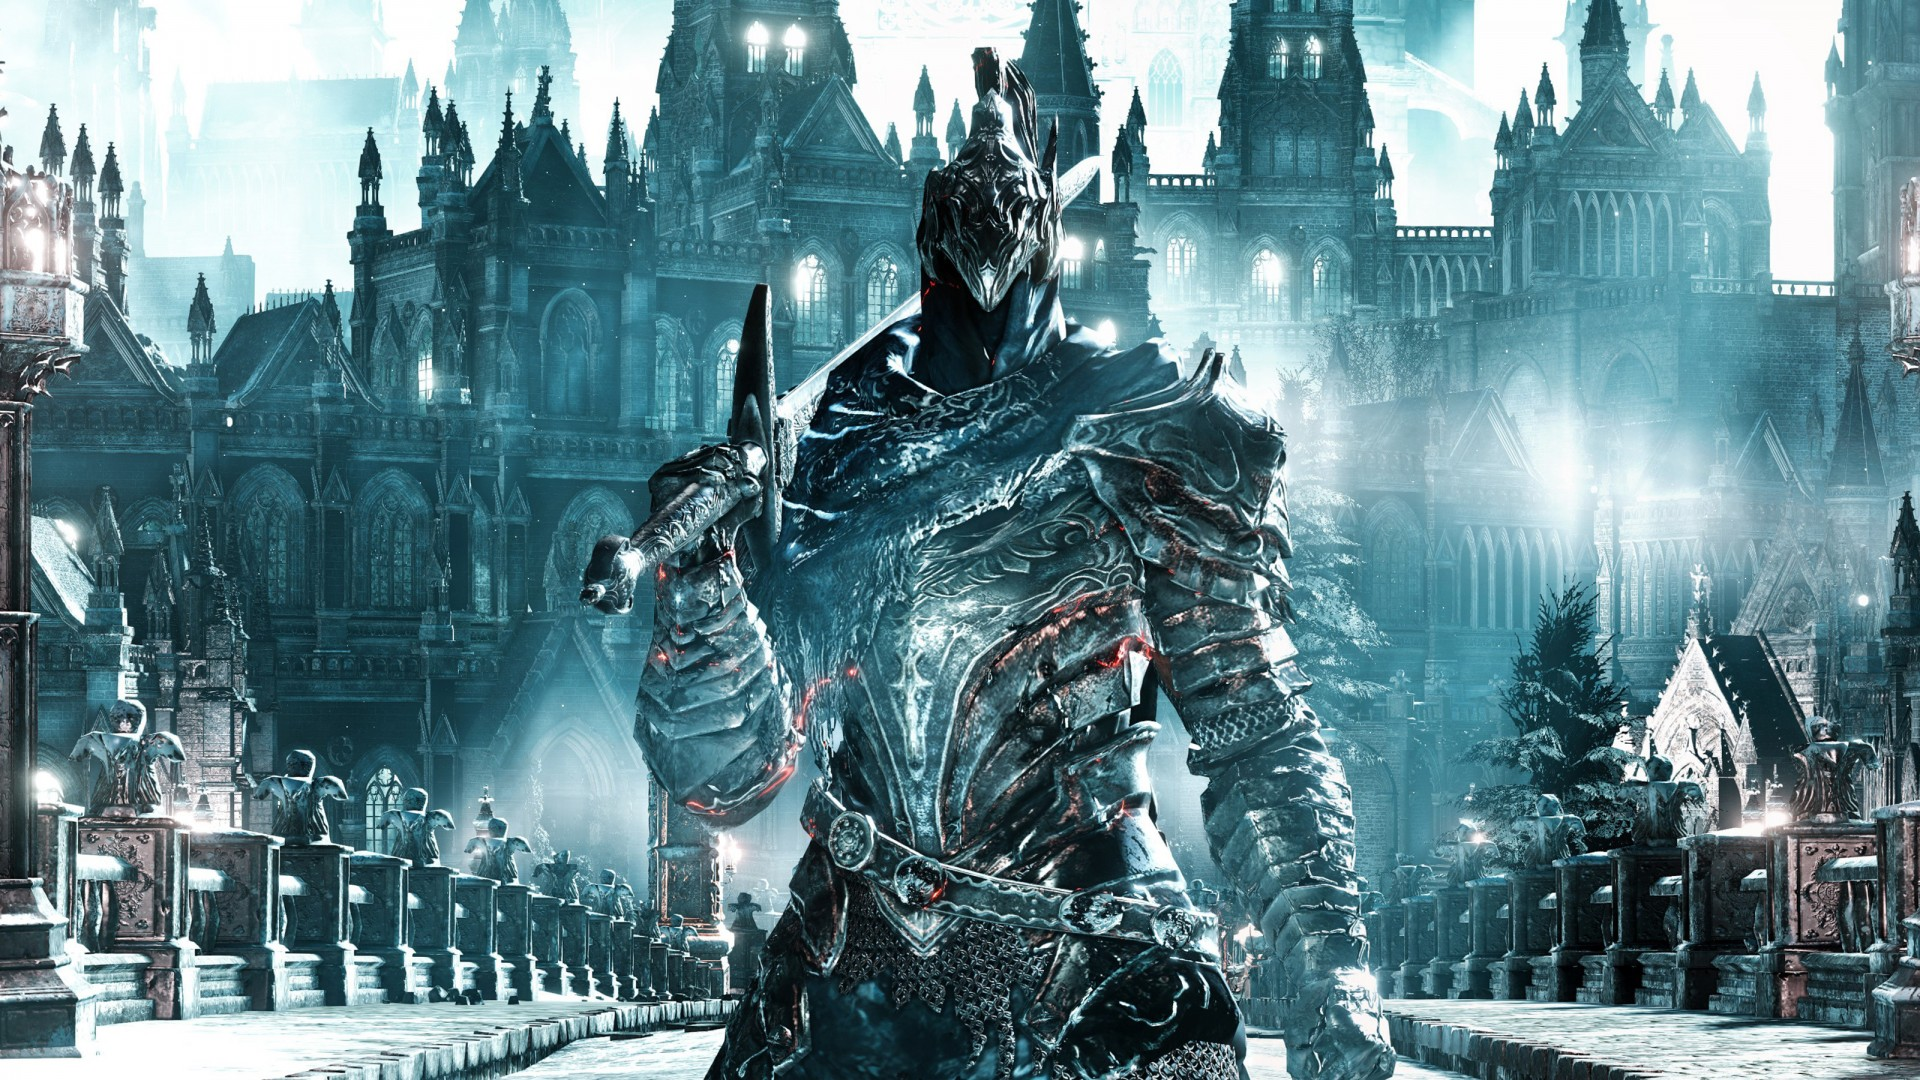 4k Wallpapers For Pc Cars Knight Artorias Dark Souls Wallpapers Hd Wallpapers Id